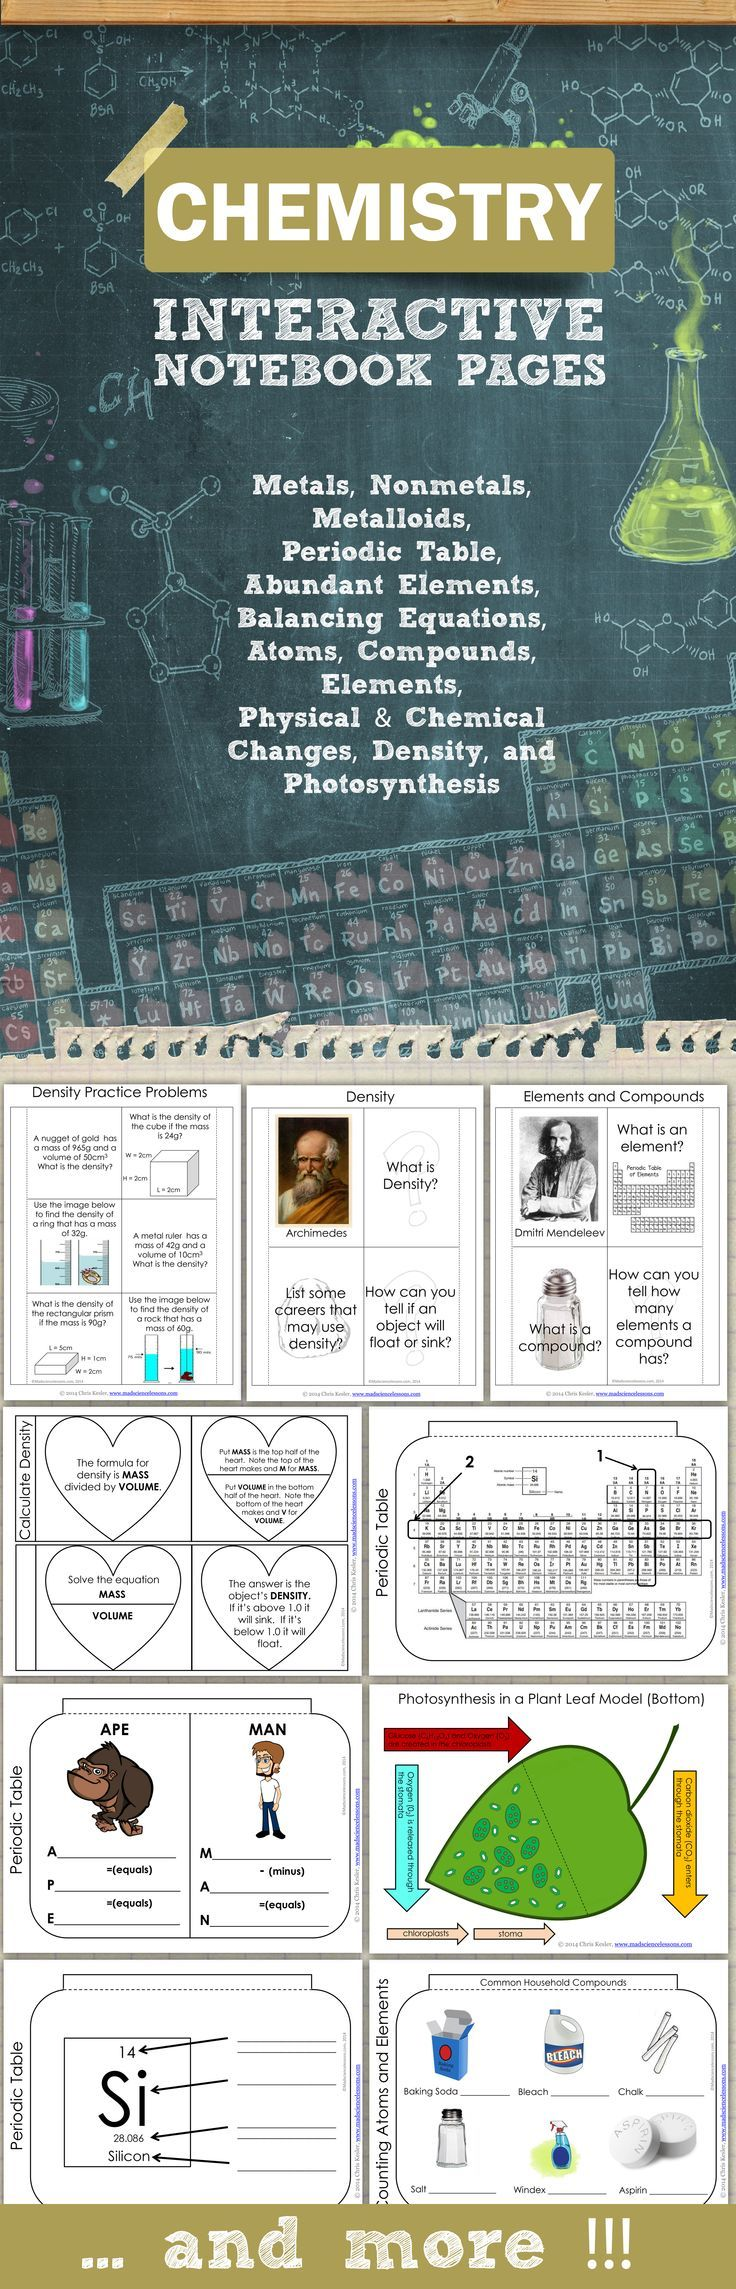 Science Interactive Templates for Middle School Chemistry  - covers metals, nonmetals, and metalloids, periodic table, protons, neutrons, electrons, balancing equations, atoms, physical and chemical changes, and more.